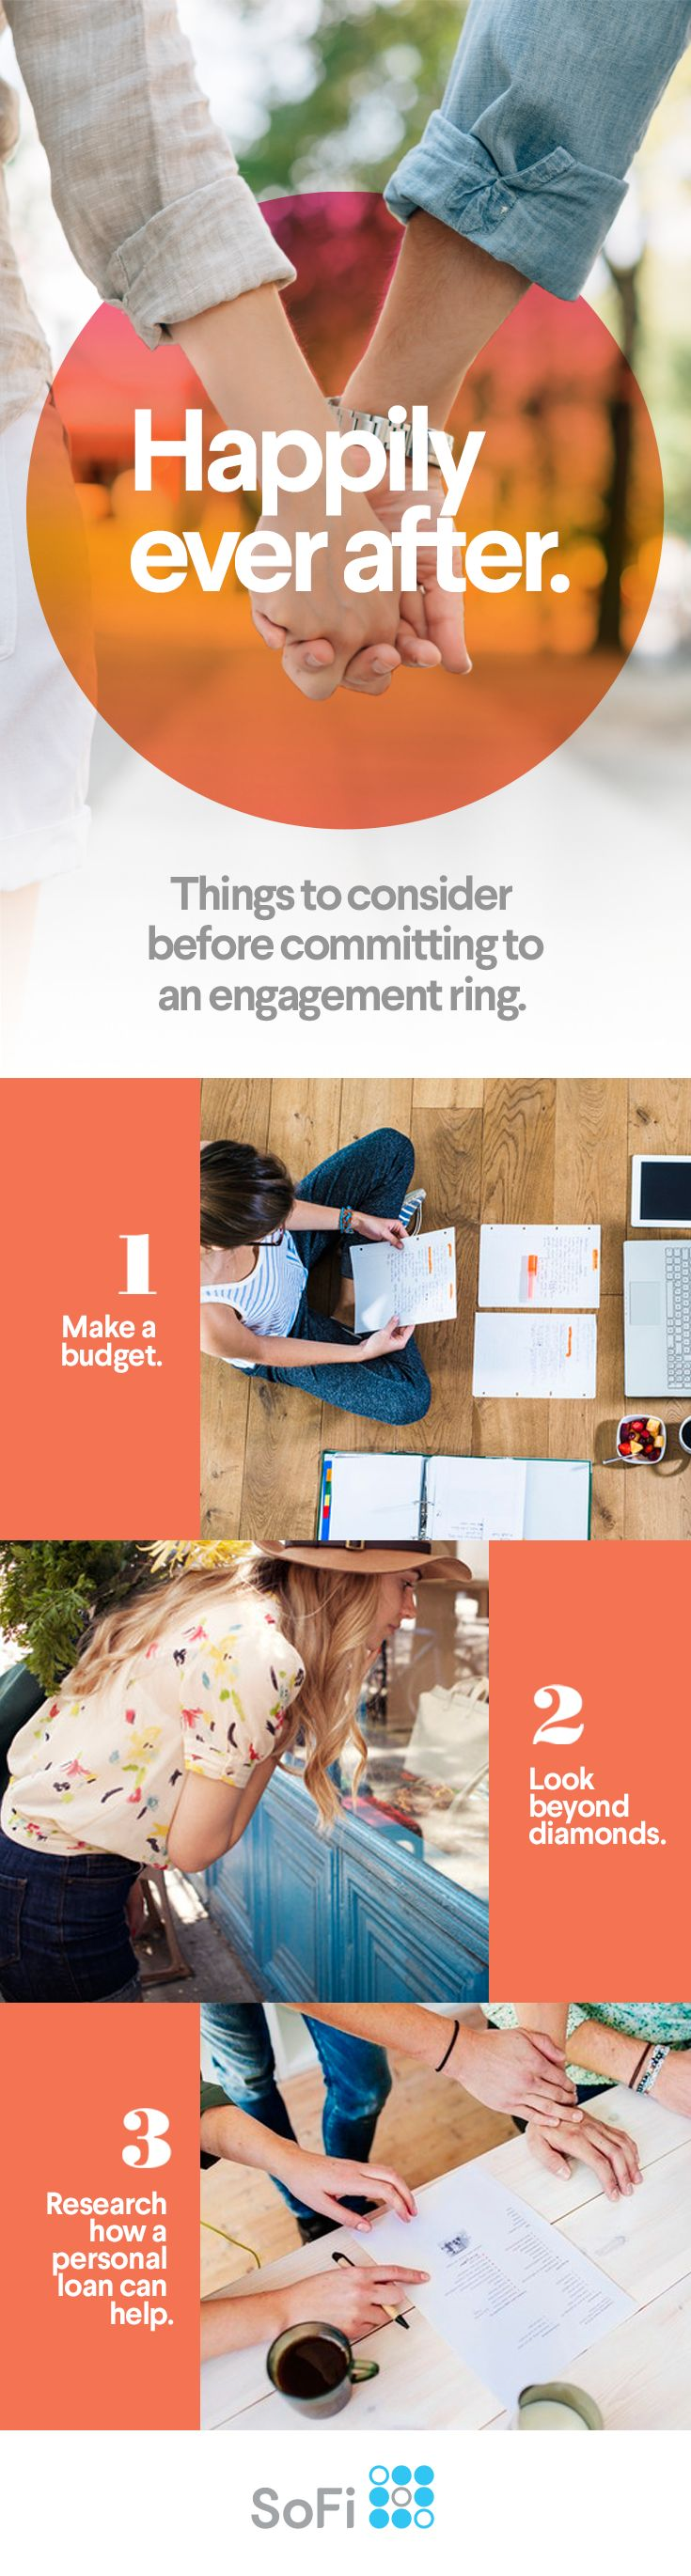 You're getting close to a proposal. Before you start planning the wedding, it's time to pick out the engagement ring. We can help you make the buying and budgeting process simple, even if you're still debating the perfect style: vintage, classic, or modern.